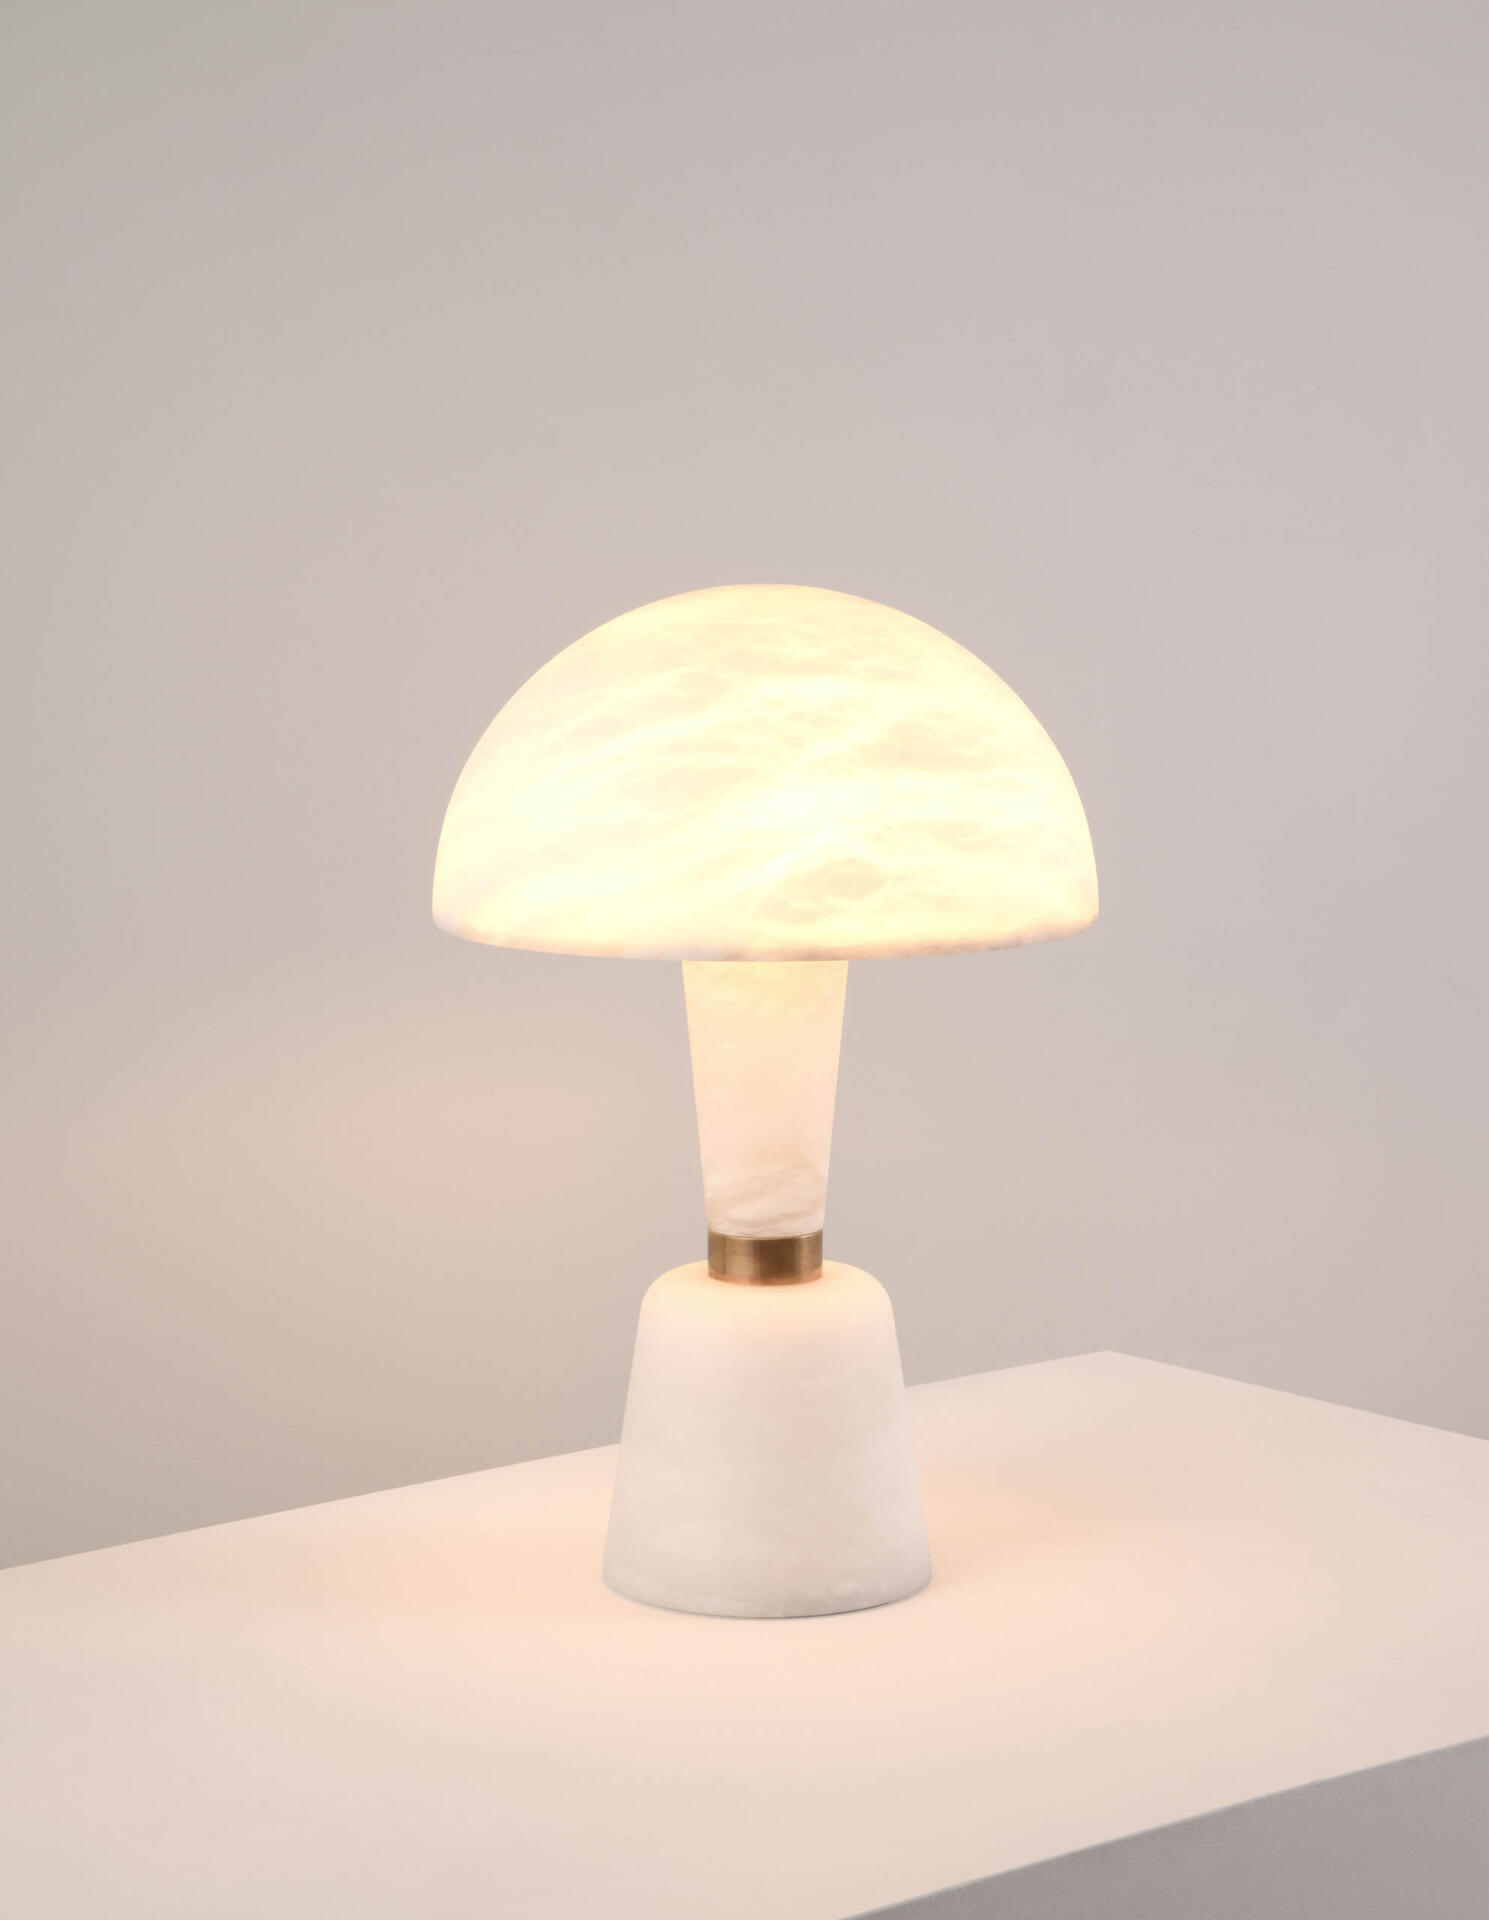 The Alabaster Cep by Collier Webb - an alabaster table lamp